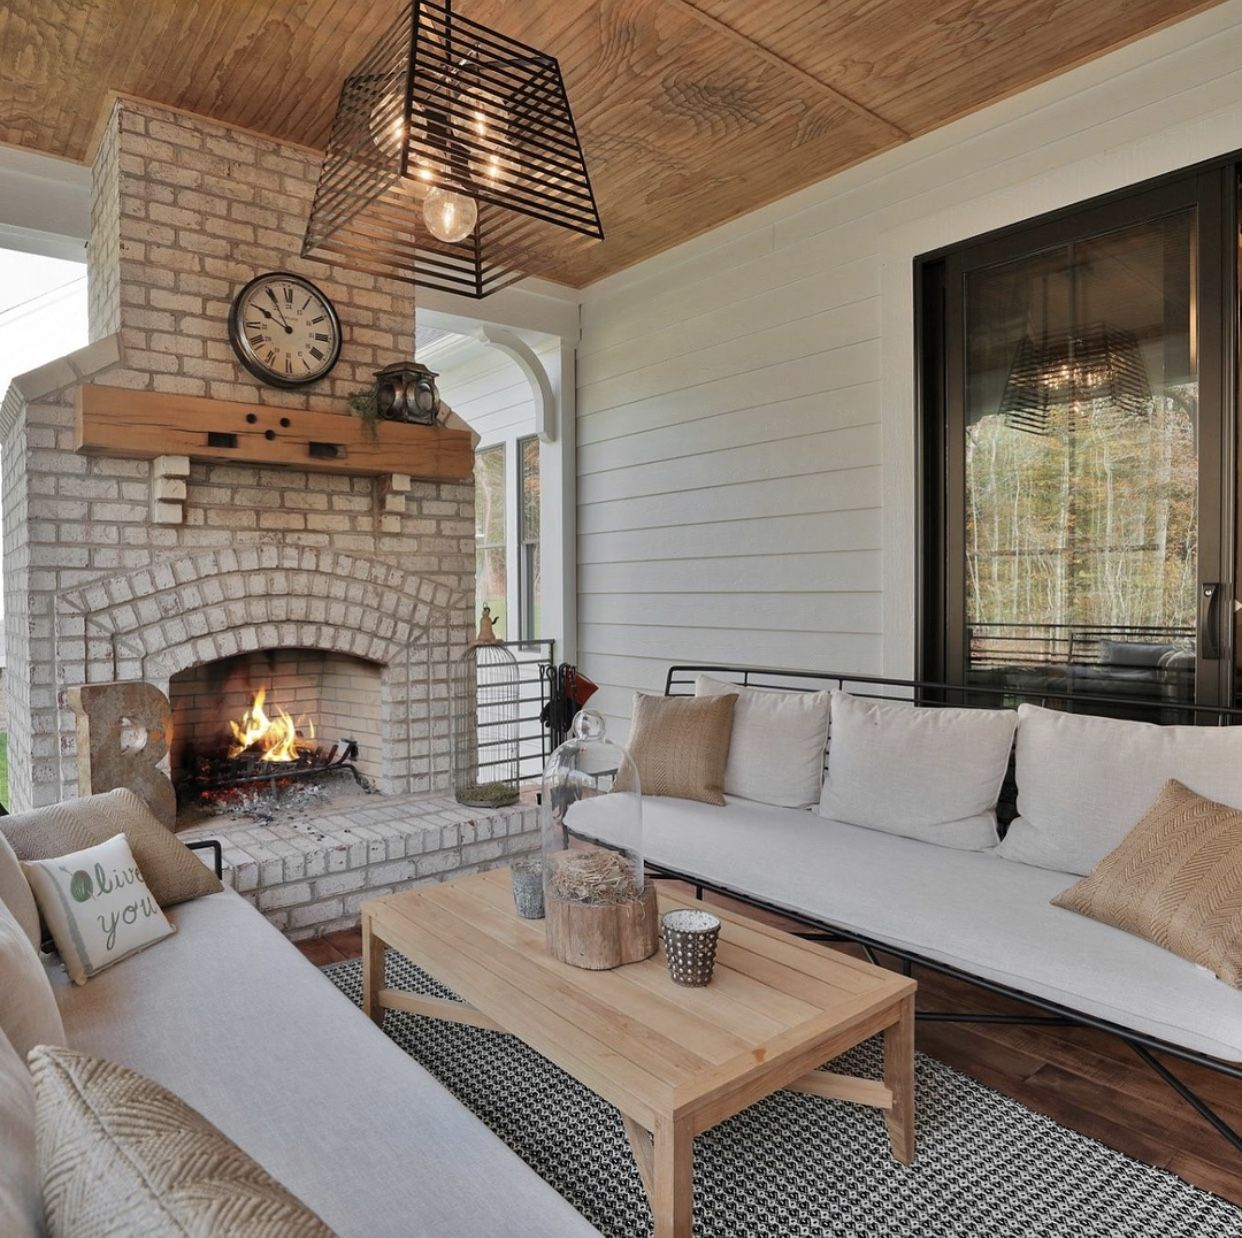 Street of Hope Deck | Outdoor living, Luxury furniture ... on Fine Living Patio Set id=21469